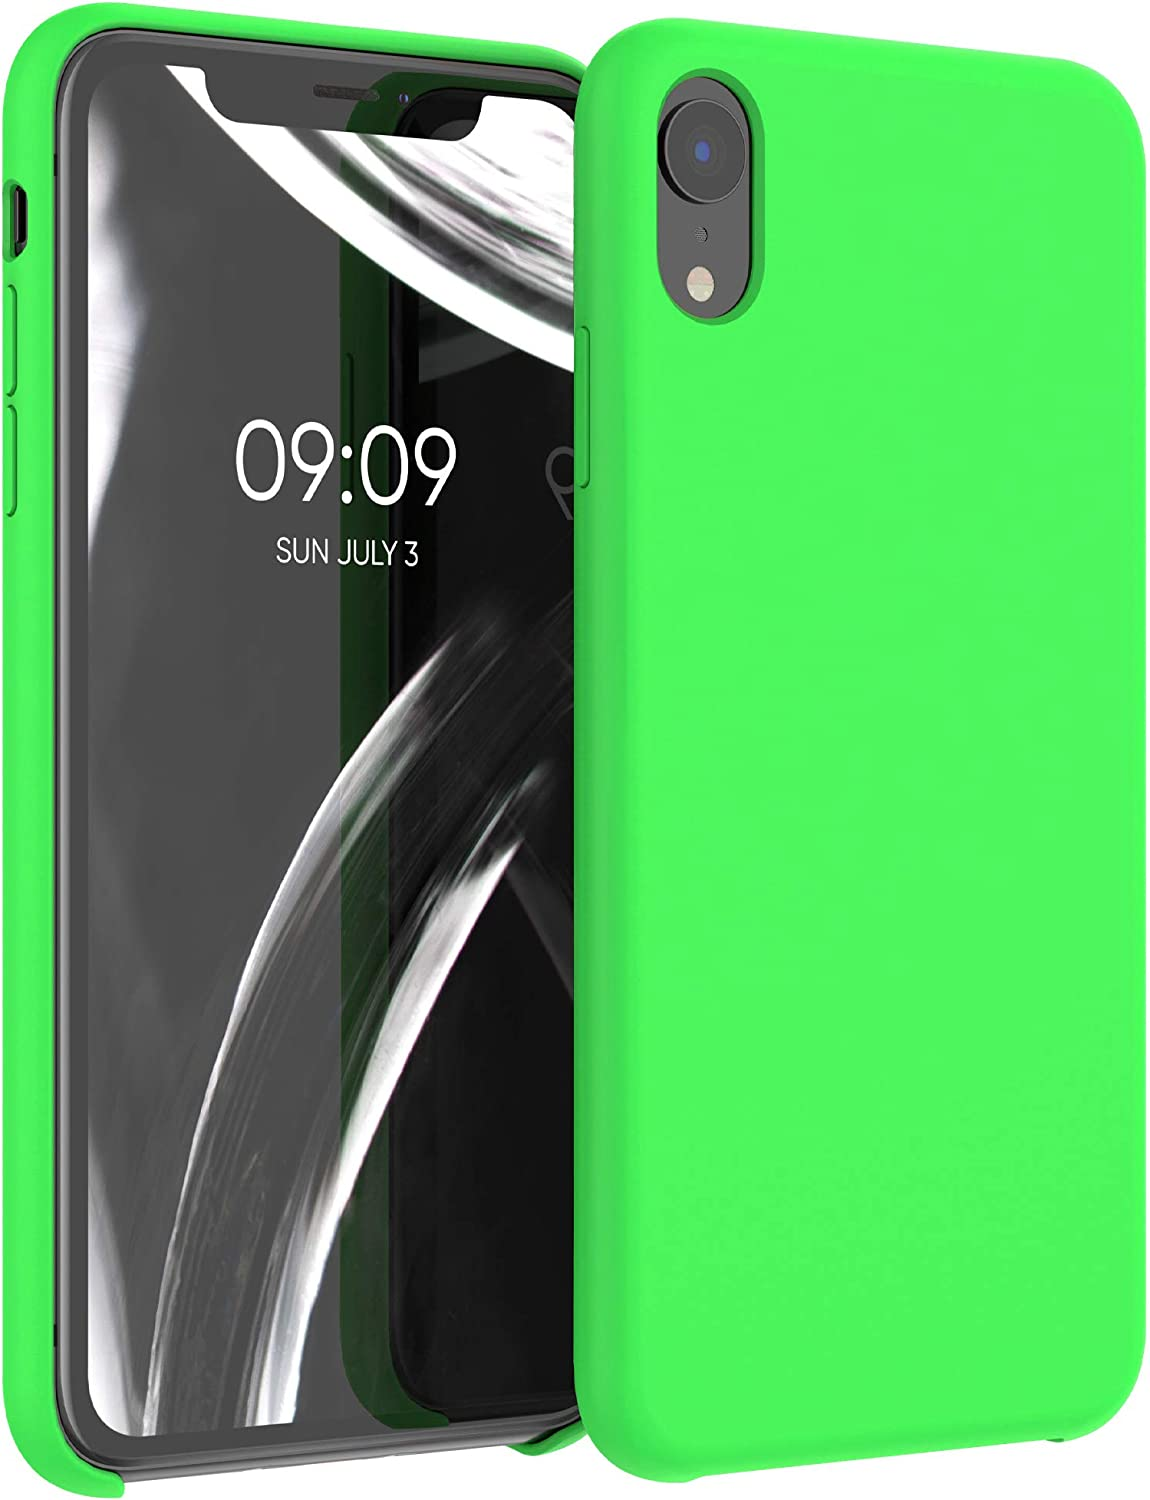 kwmobile TPU Silicone Case Compatible with Apple iPhone XR - Case Slim Protective Phone Cover with Soft Finish - Lime Green